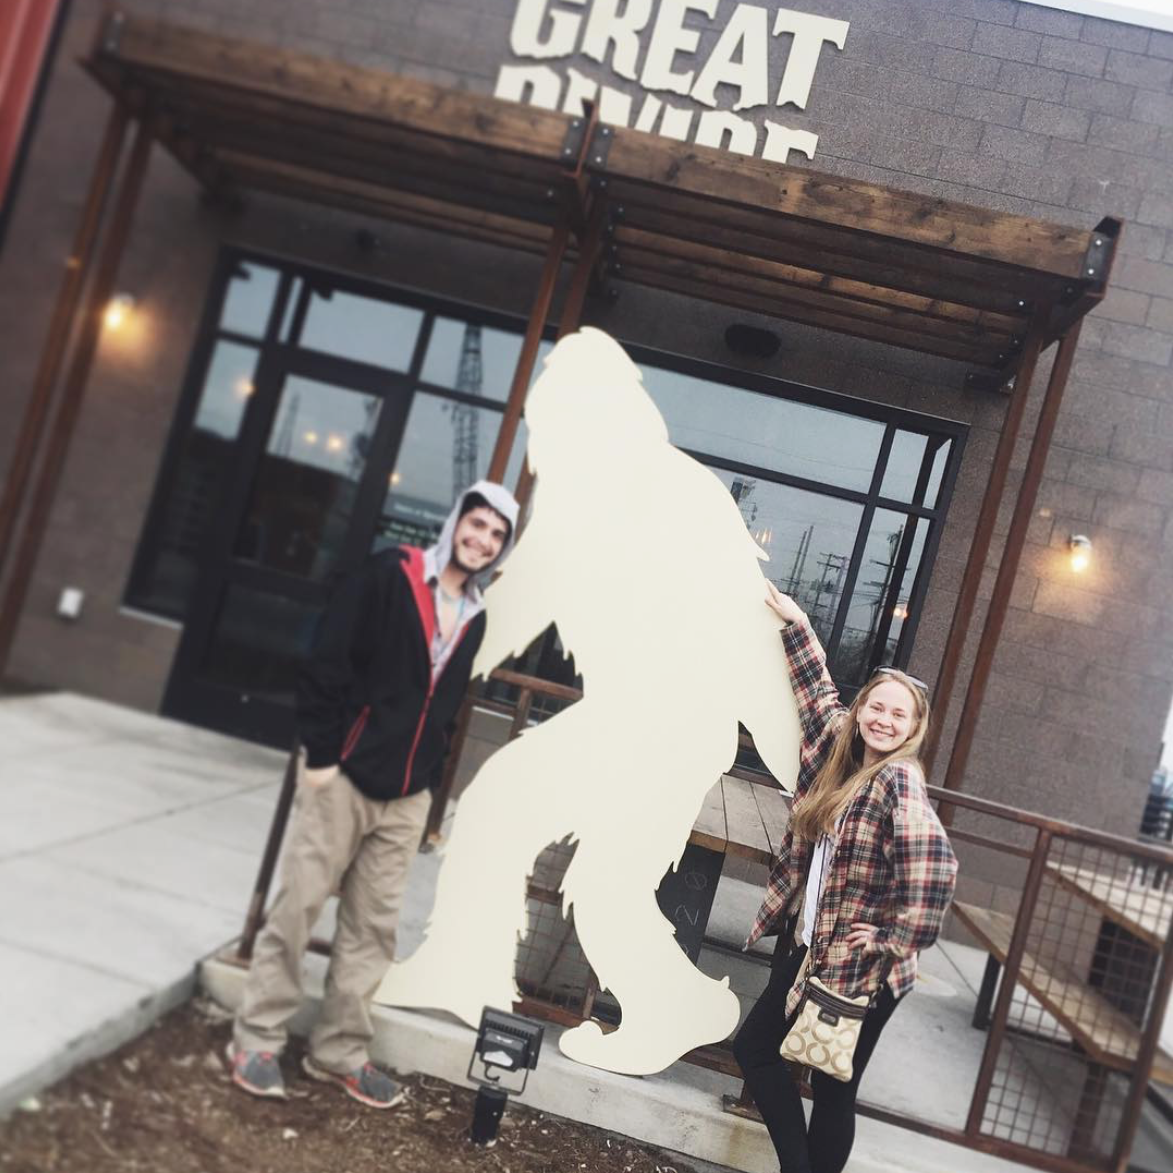 Our friends at Great Divide!